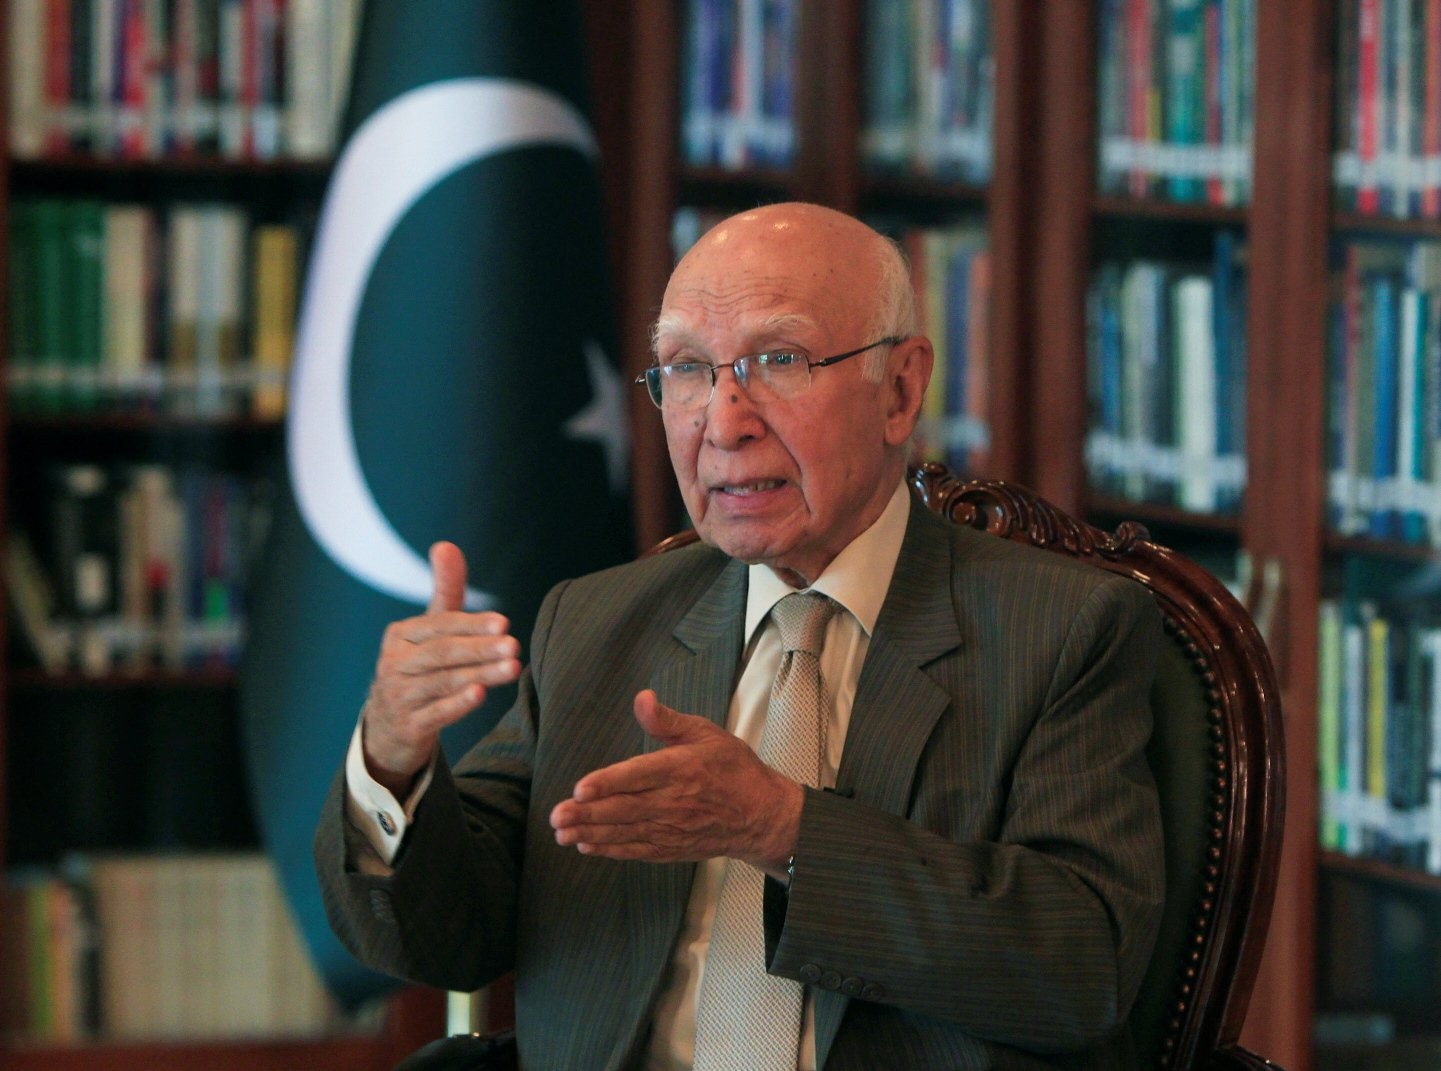 Prime Minister's Adviser on Foreign Affairs Sartaj Aziz says peace in Afghanistan is vital for Pakistan's security. PHOTO: Reuters